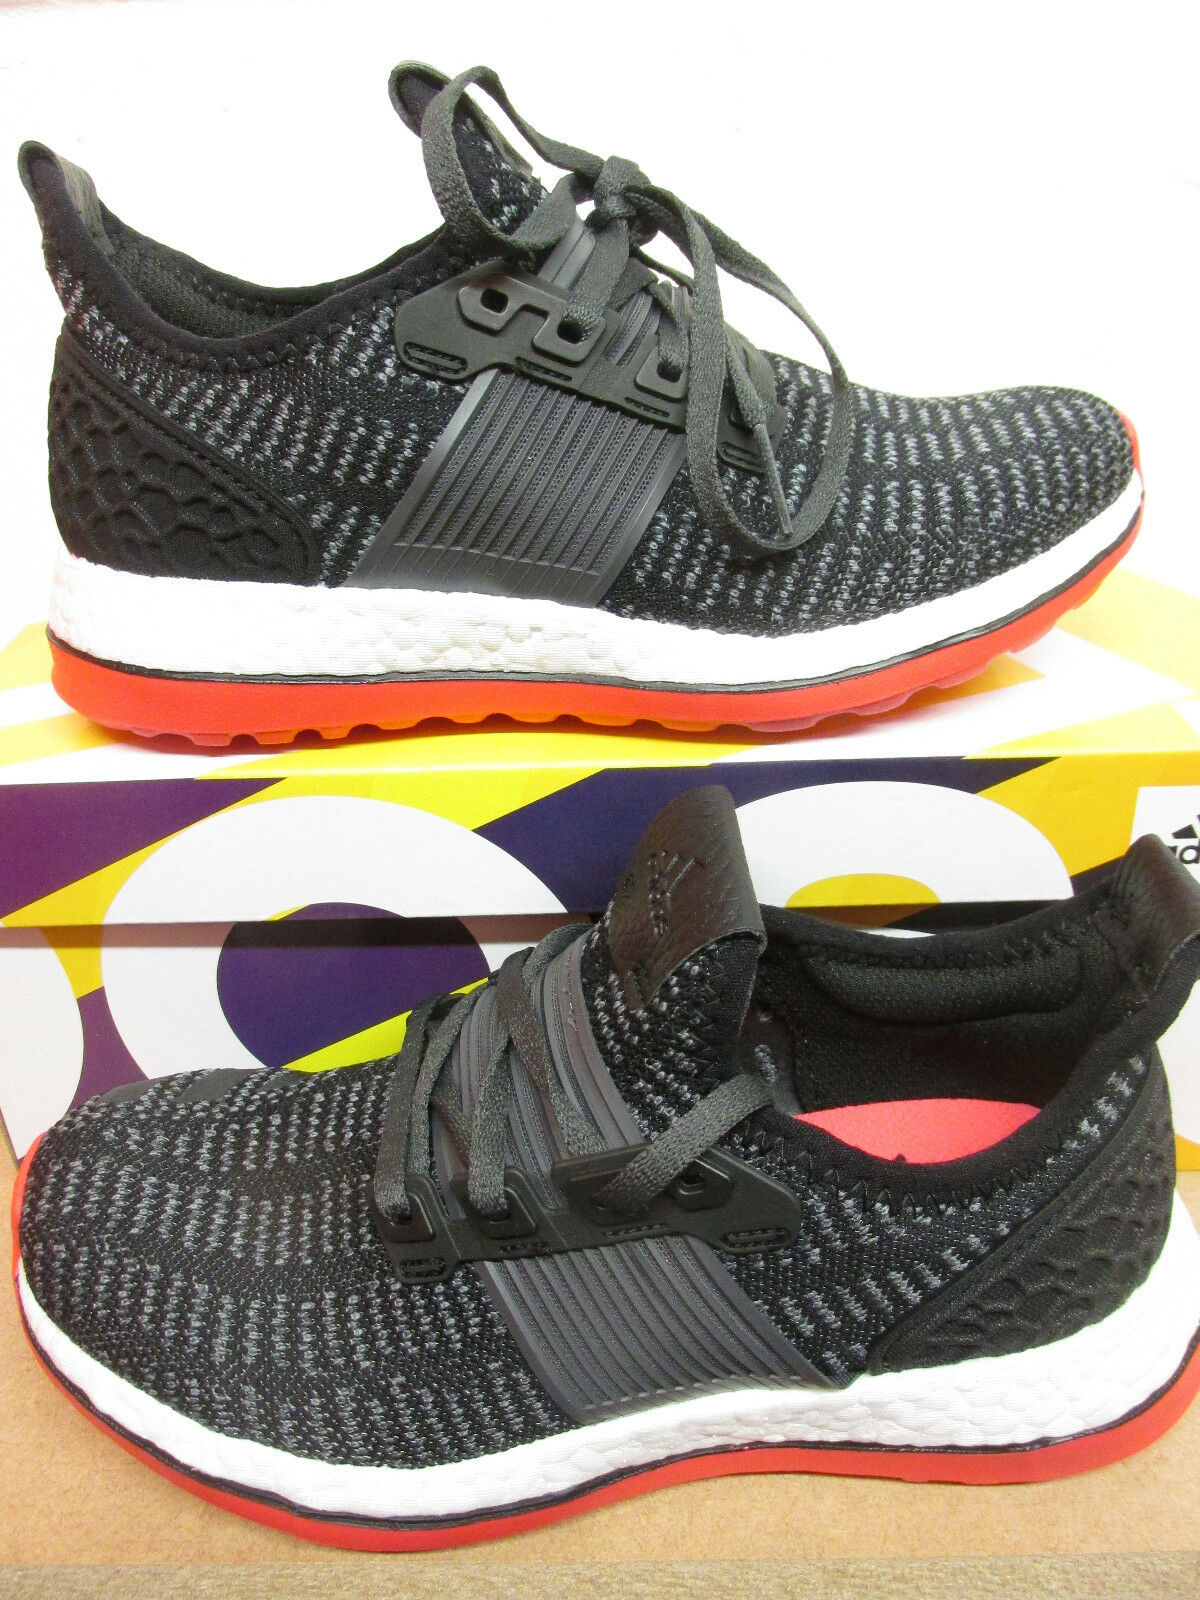 Adidas Pure Bottes   ZG Prime Femme Running AQ2930 Trainers Sneakers